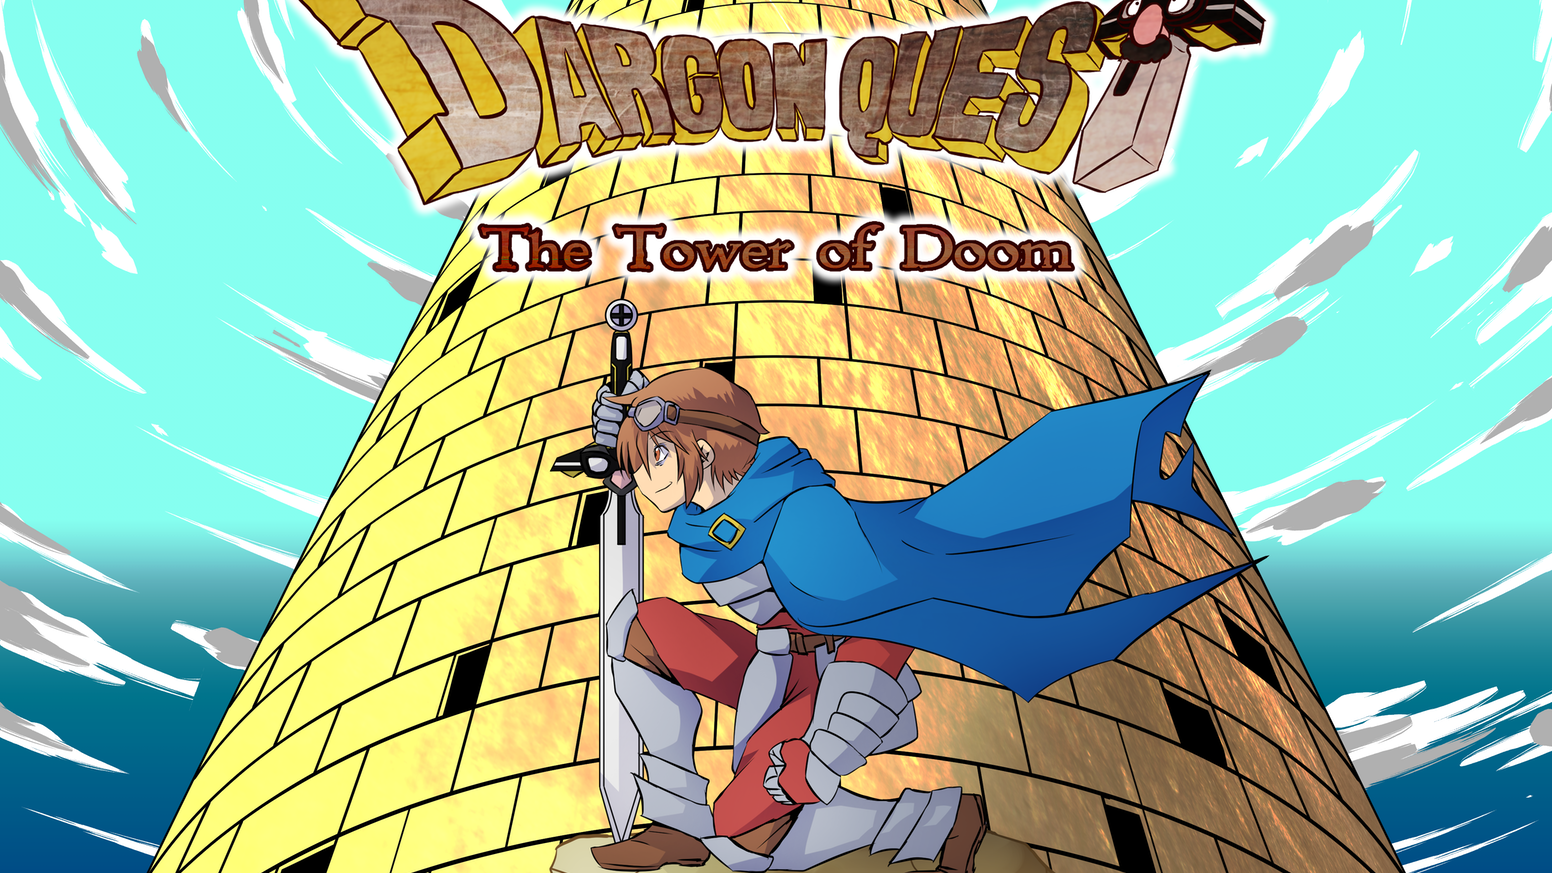 Dargon quest the tower of doom by carey martell kickstarter a homage to classic jrpgs like dragon quest lufia and final fantasy spinoff from the rpg fanatic youtube channel publicscrutiny Image collections